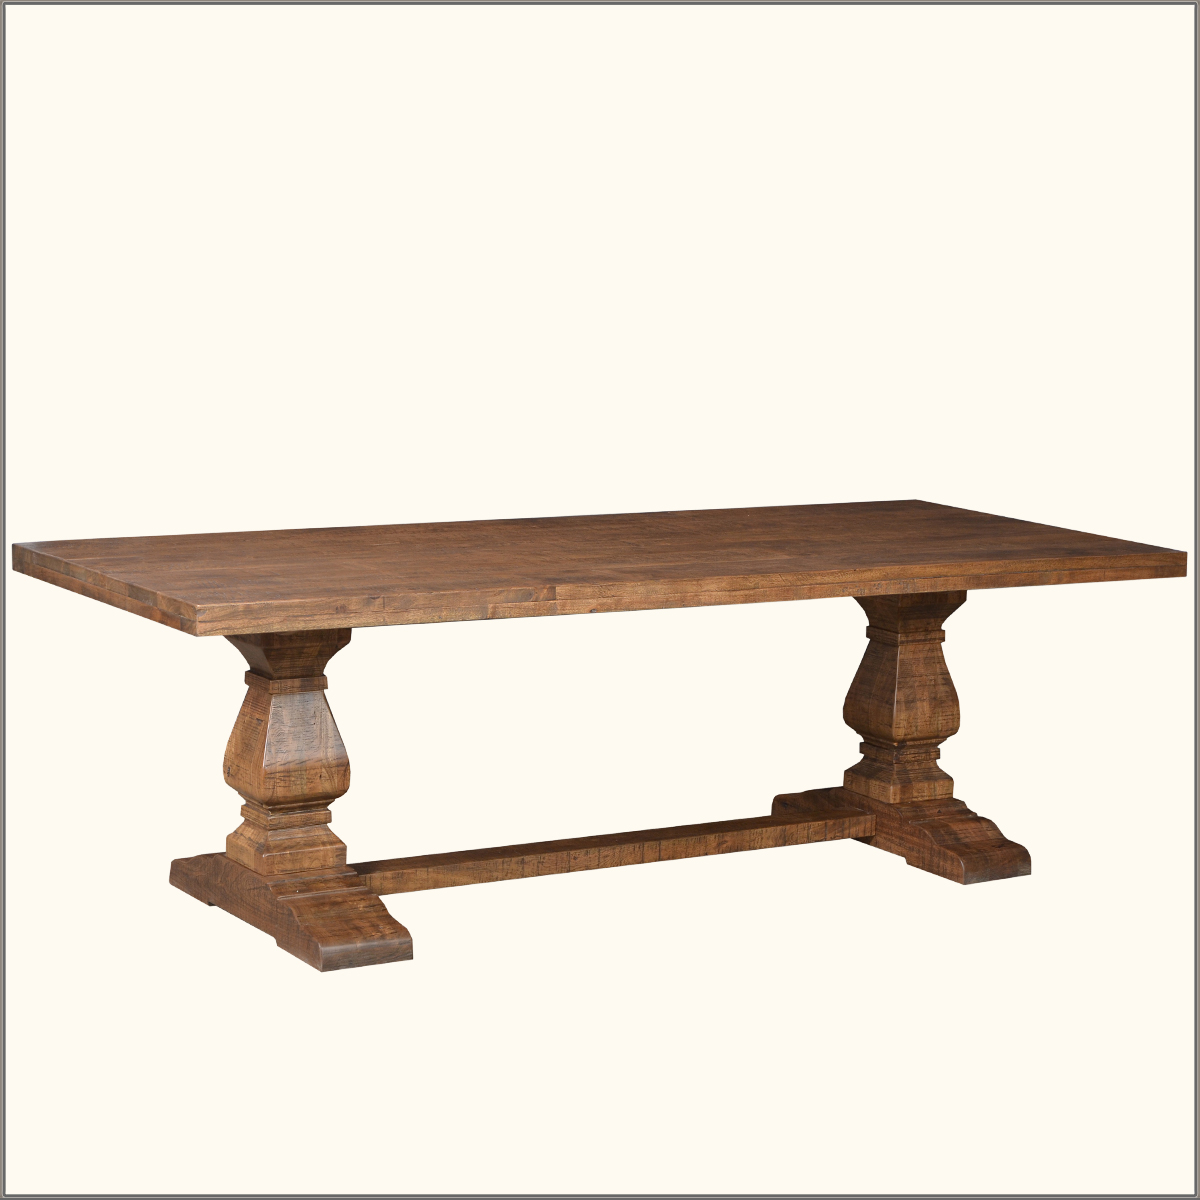 Rustic Farmhouse Trestle Pedestal Solid Wood Dining Table for 8